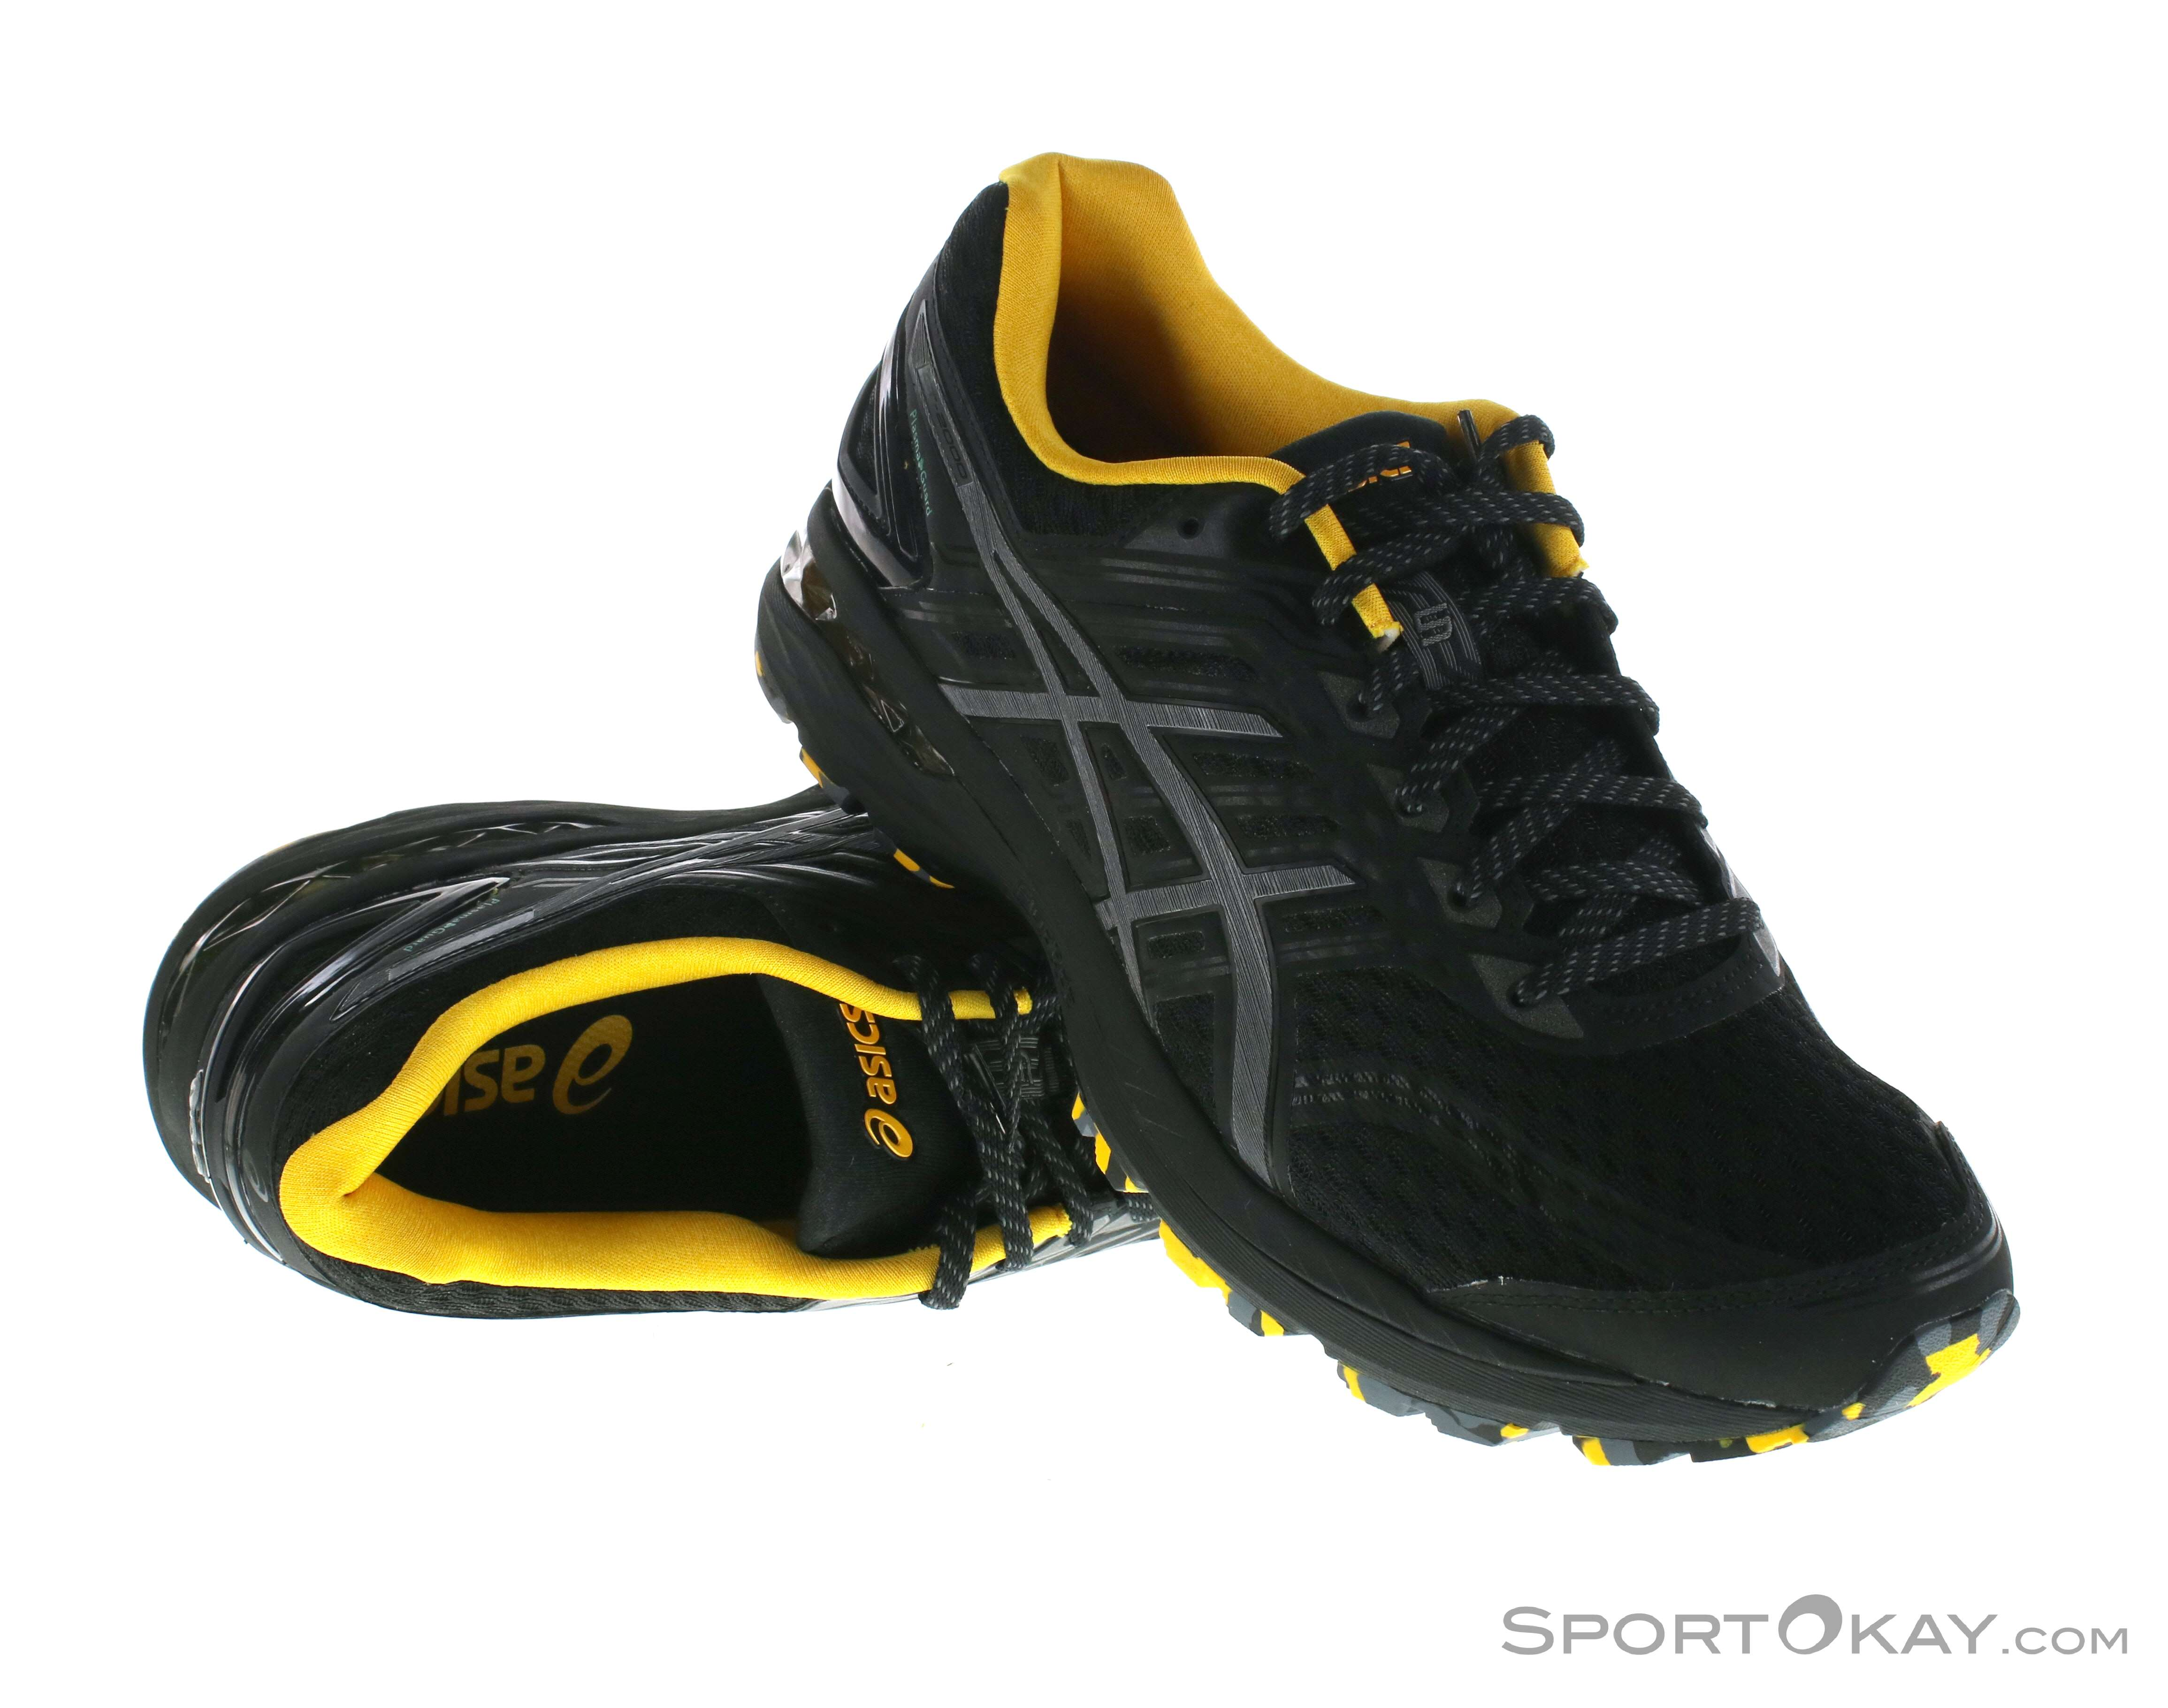 57cfe4670181 Asics GT 2000 5 Plasma Guard Mens Trail Running Shoes - Trail ...